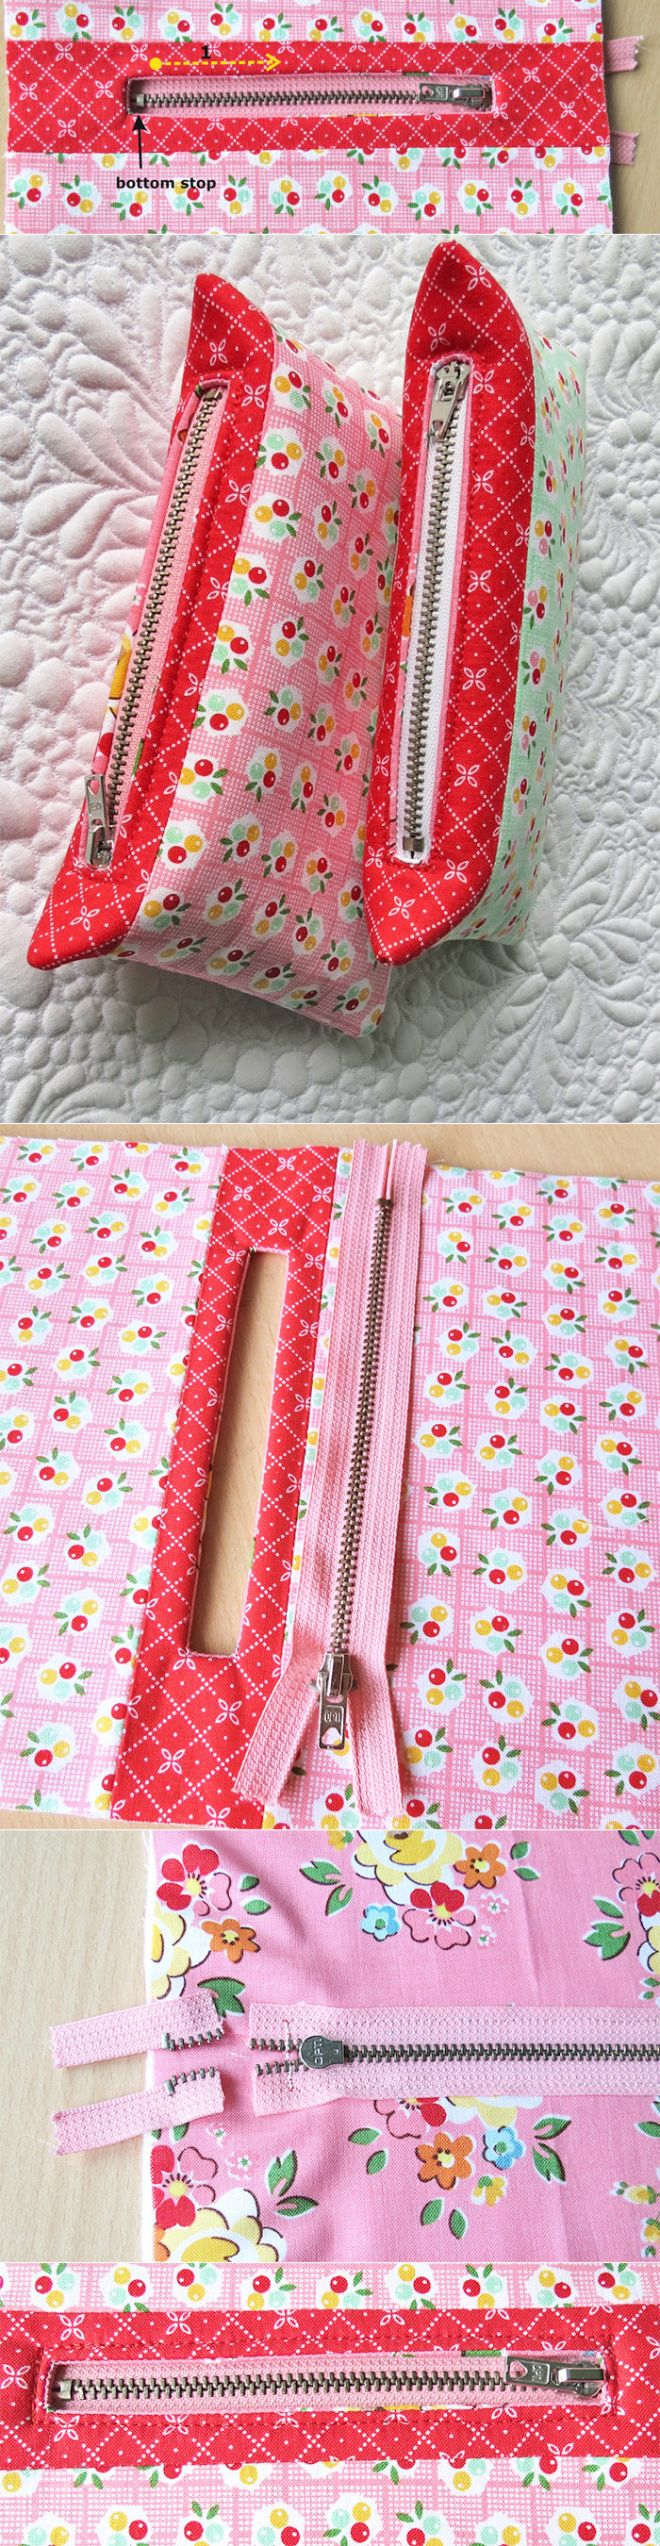 How to shorten zippers for pouches and bags - Geta's Quilting Studio